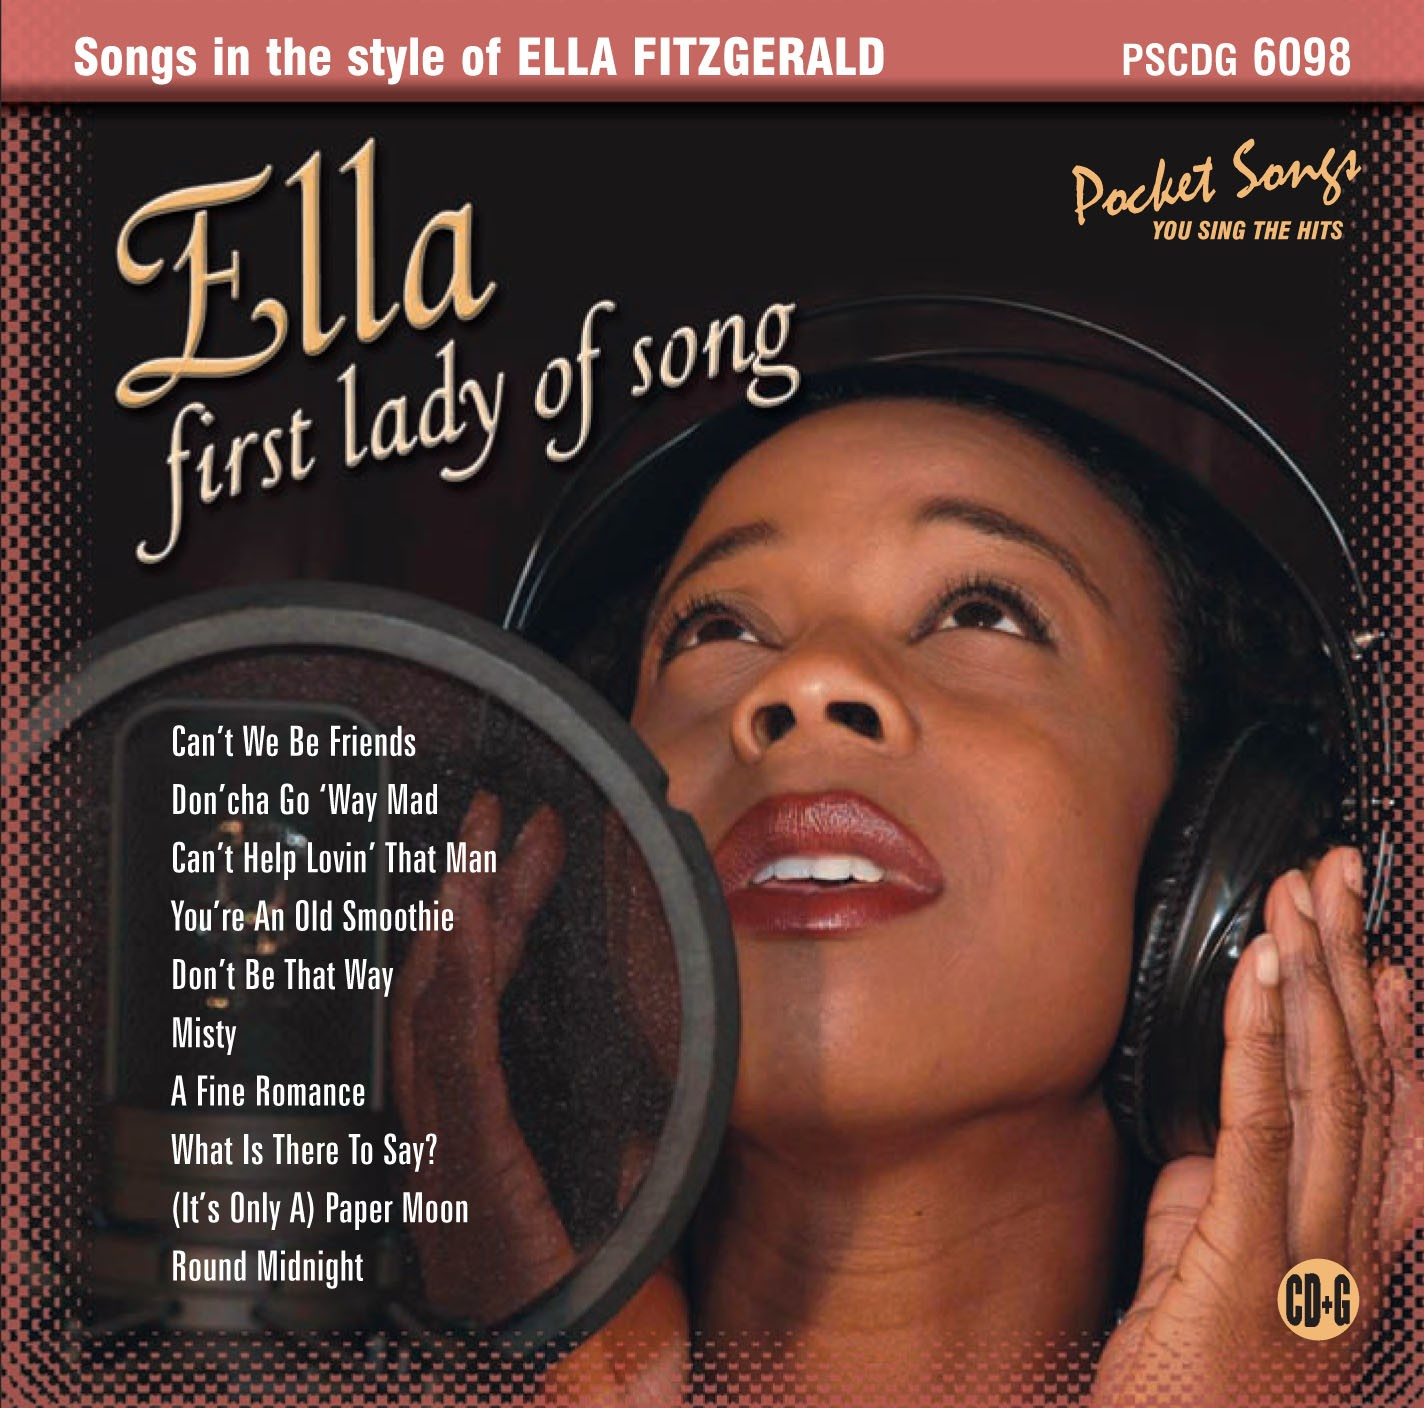 PSCDG6098 1 Ella Fitzgerald List of Songs